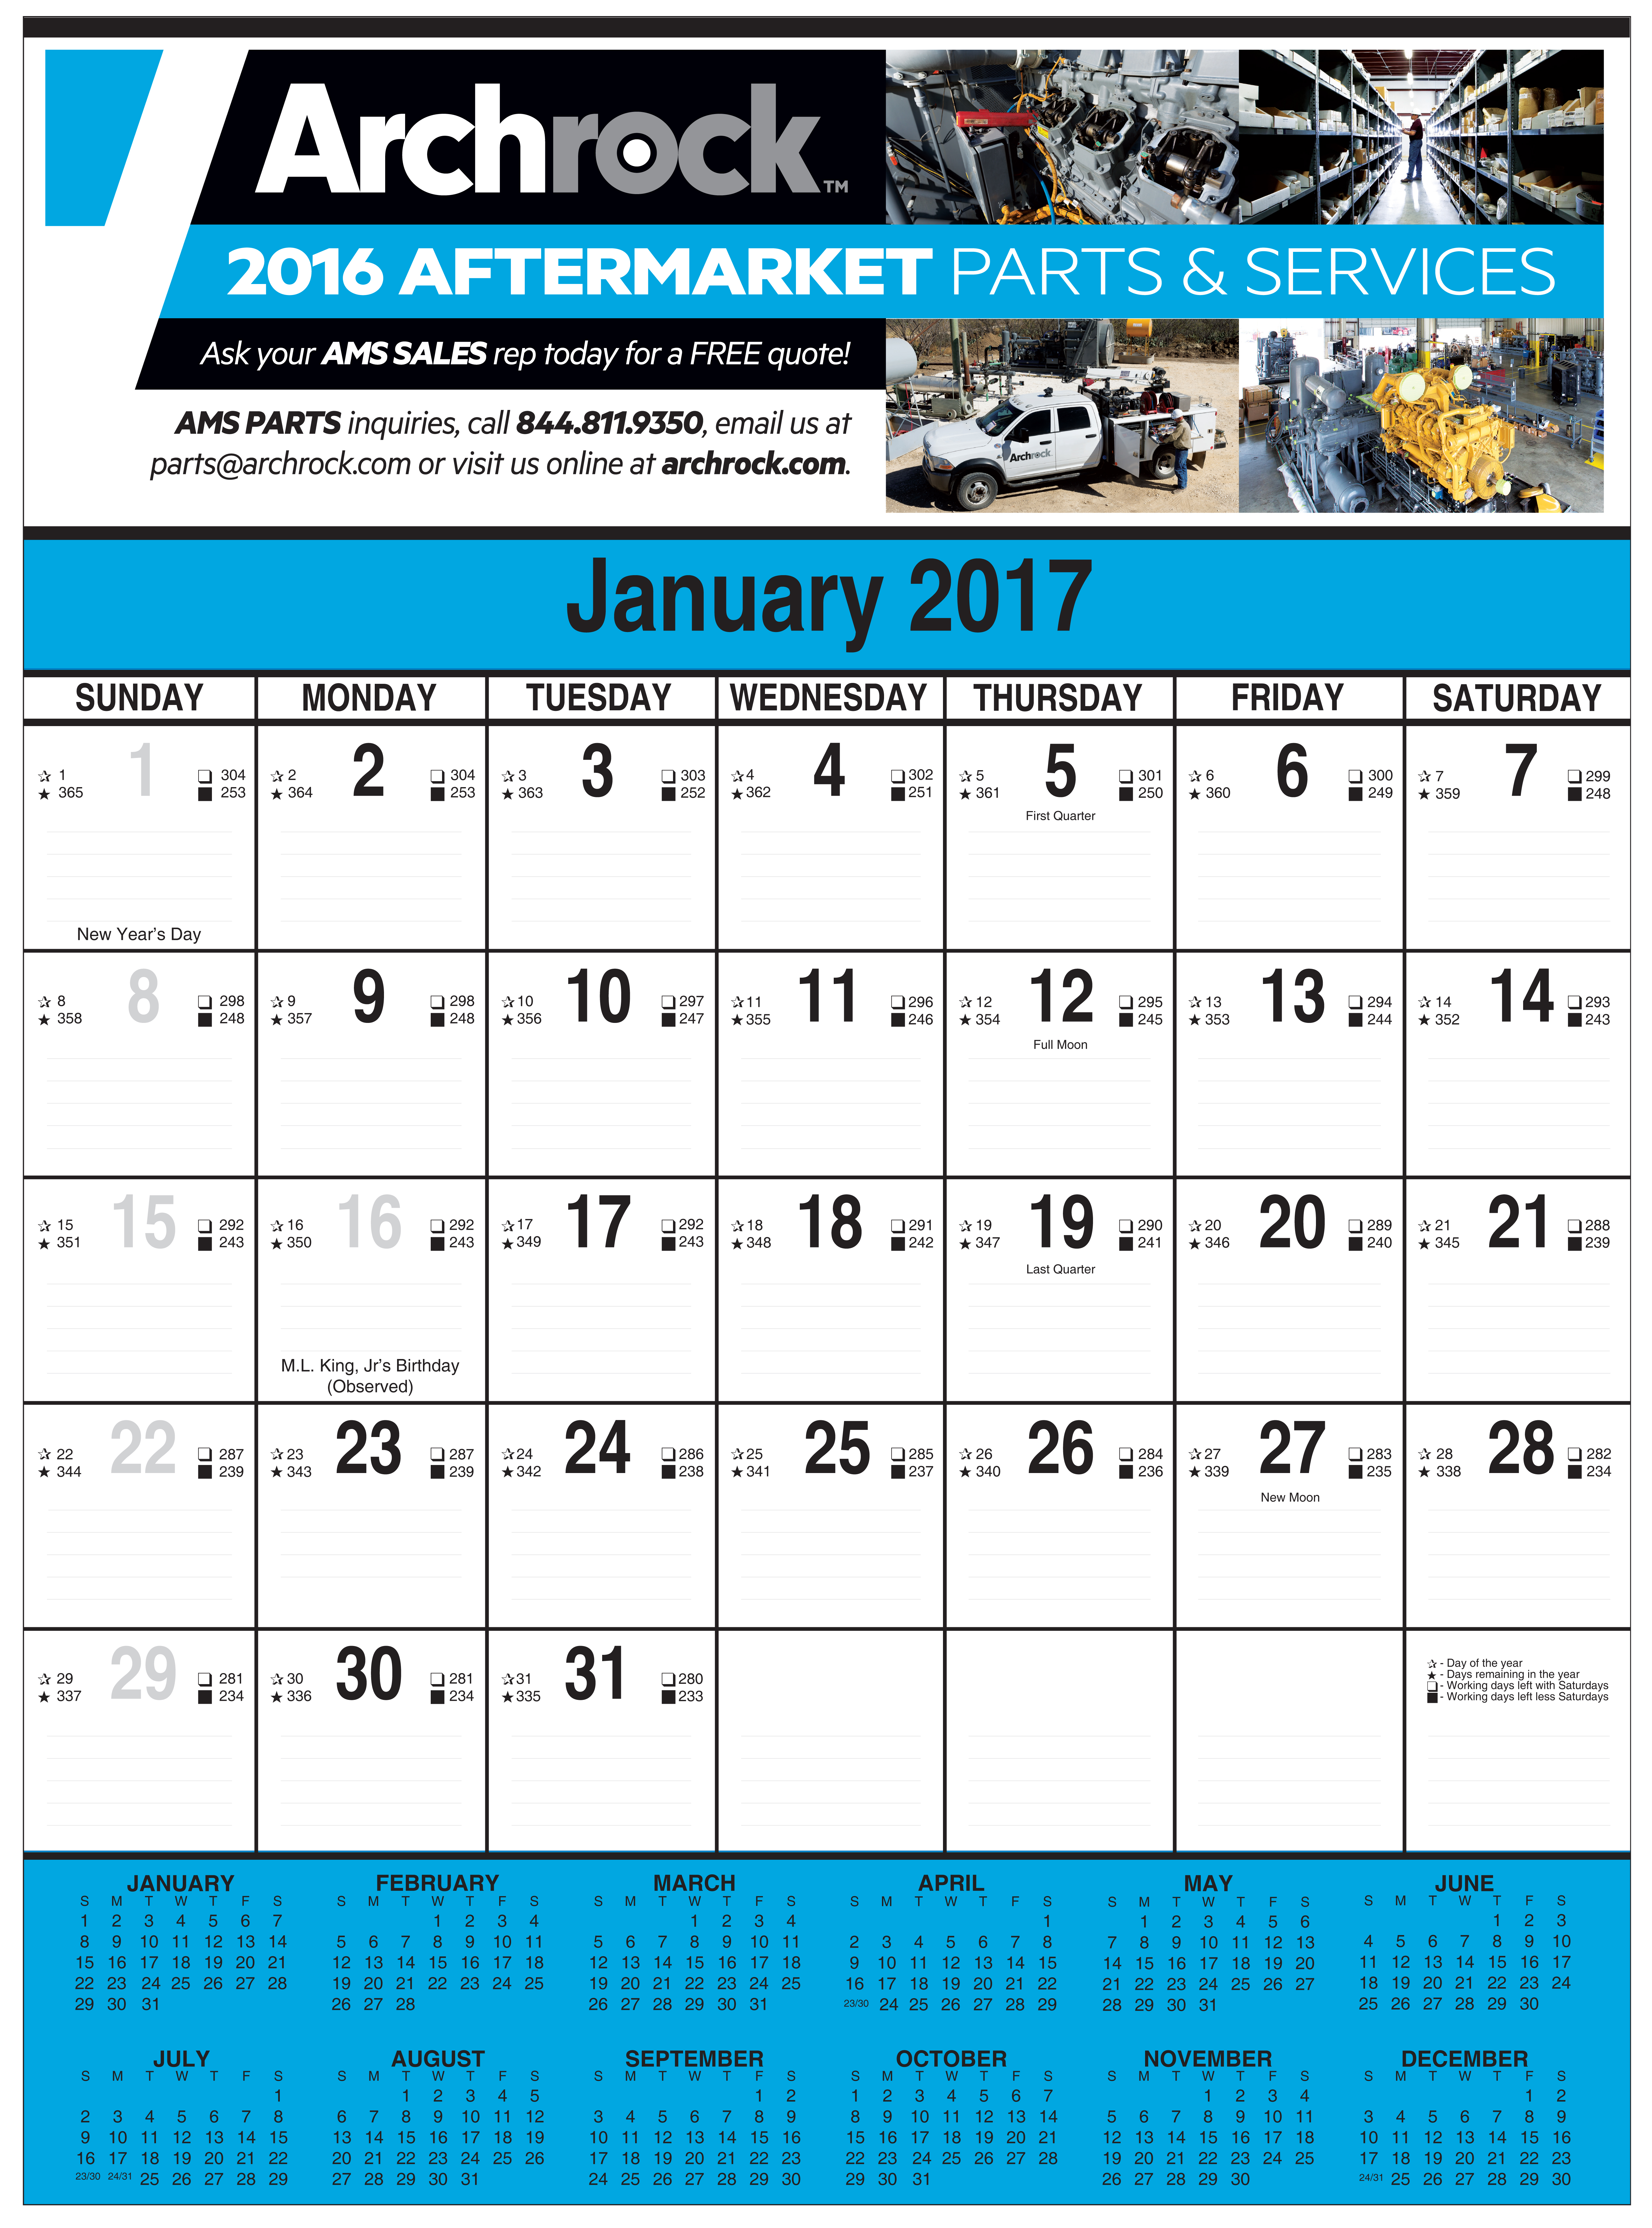 Working Days Calendar 2020 2020 Custom Full Color Contractor's Calendar: Calendar Company